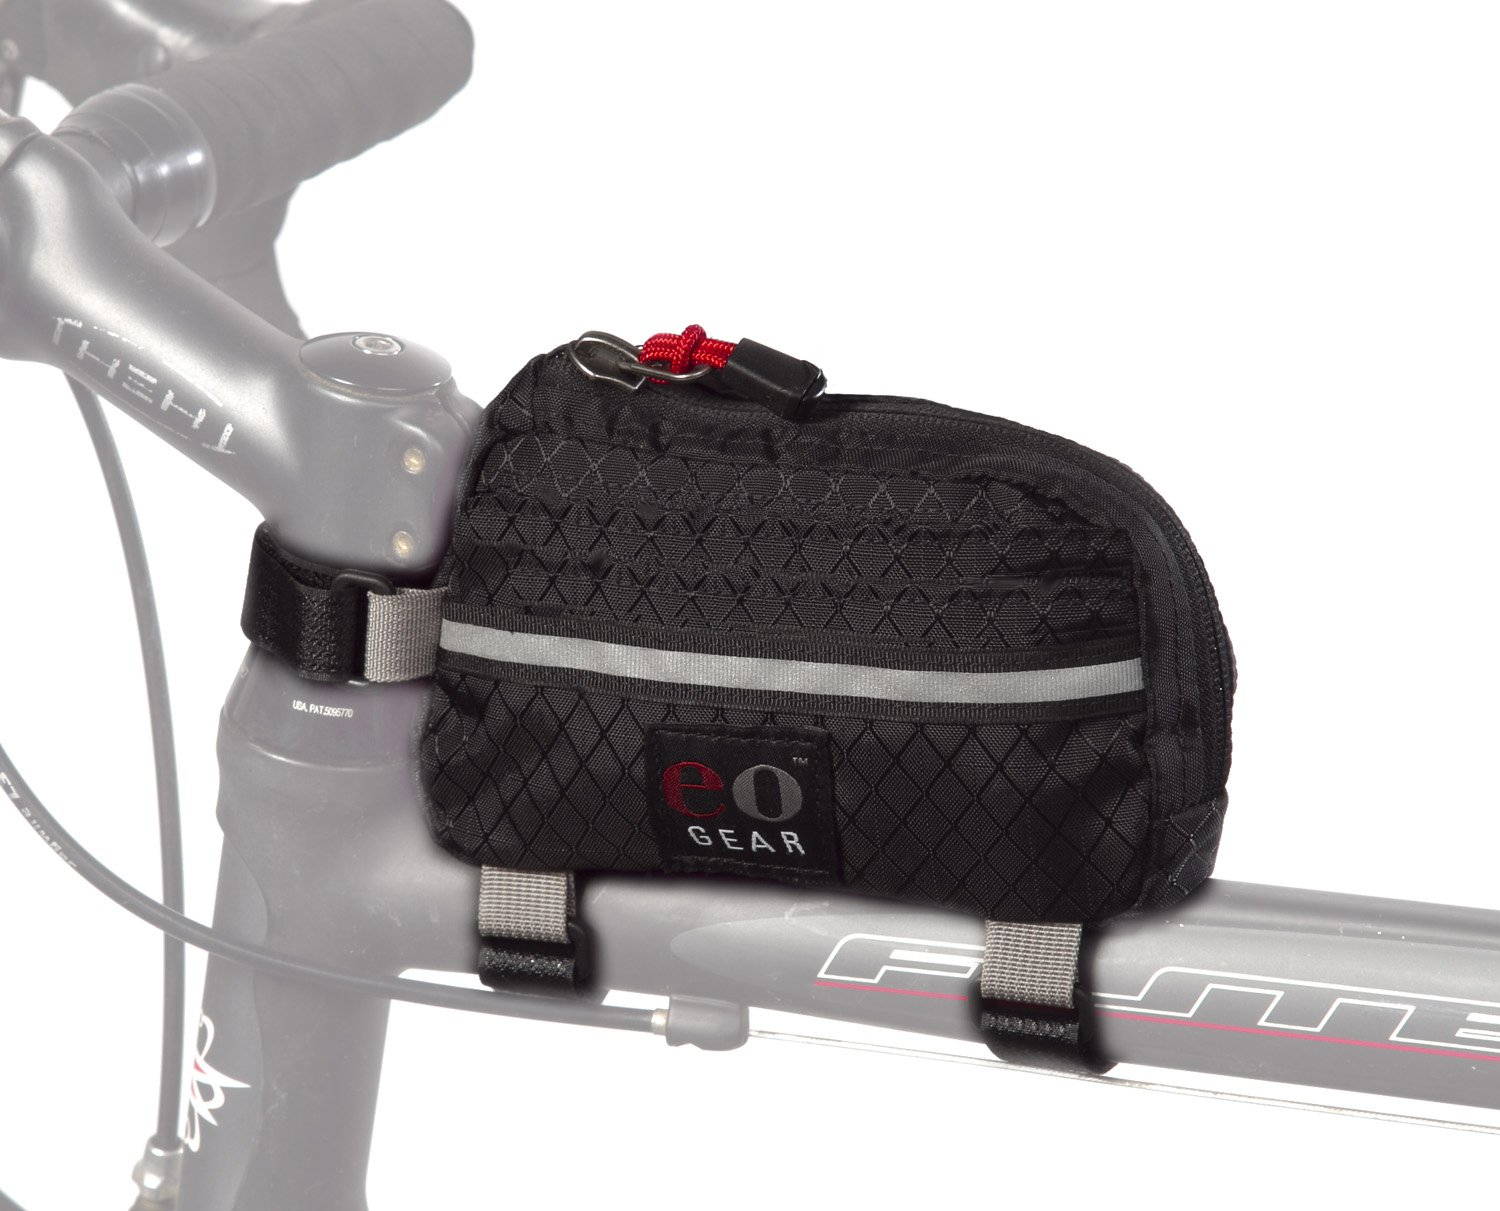 eoGEAR Century Lite Bag/Black